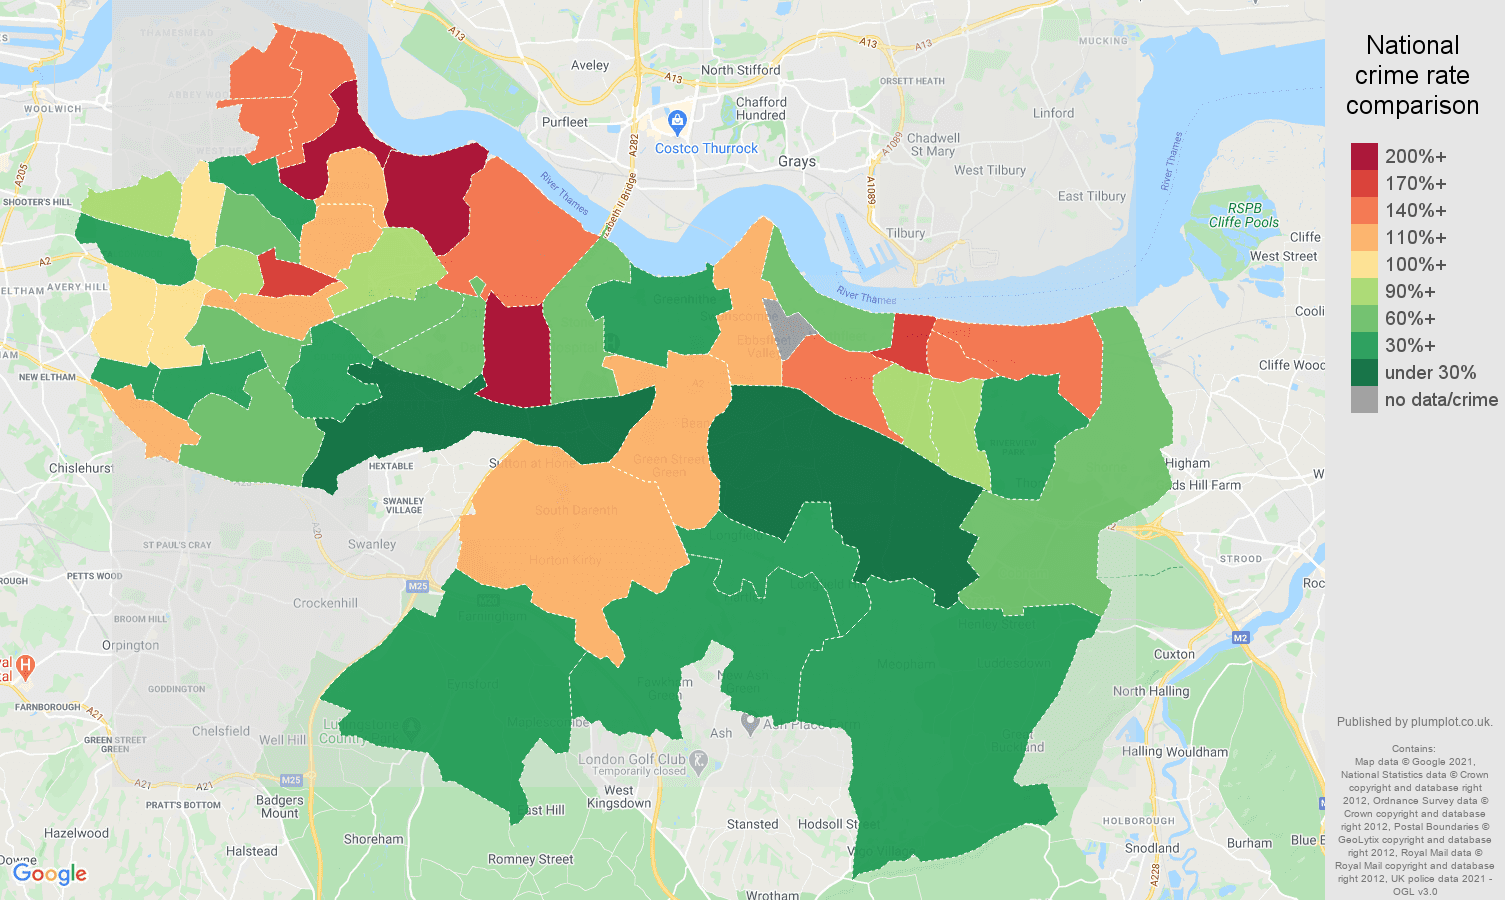 Dartford drugs crime rate comparison map